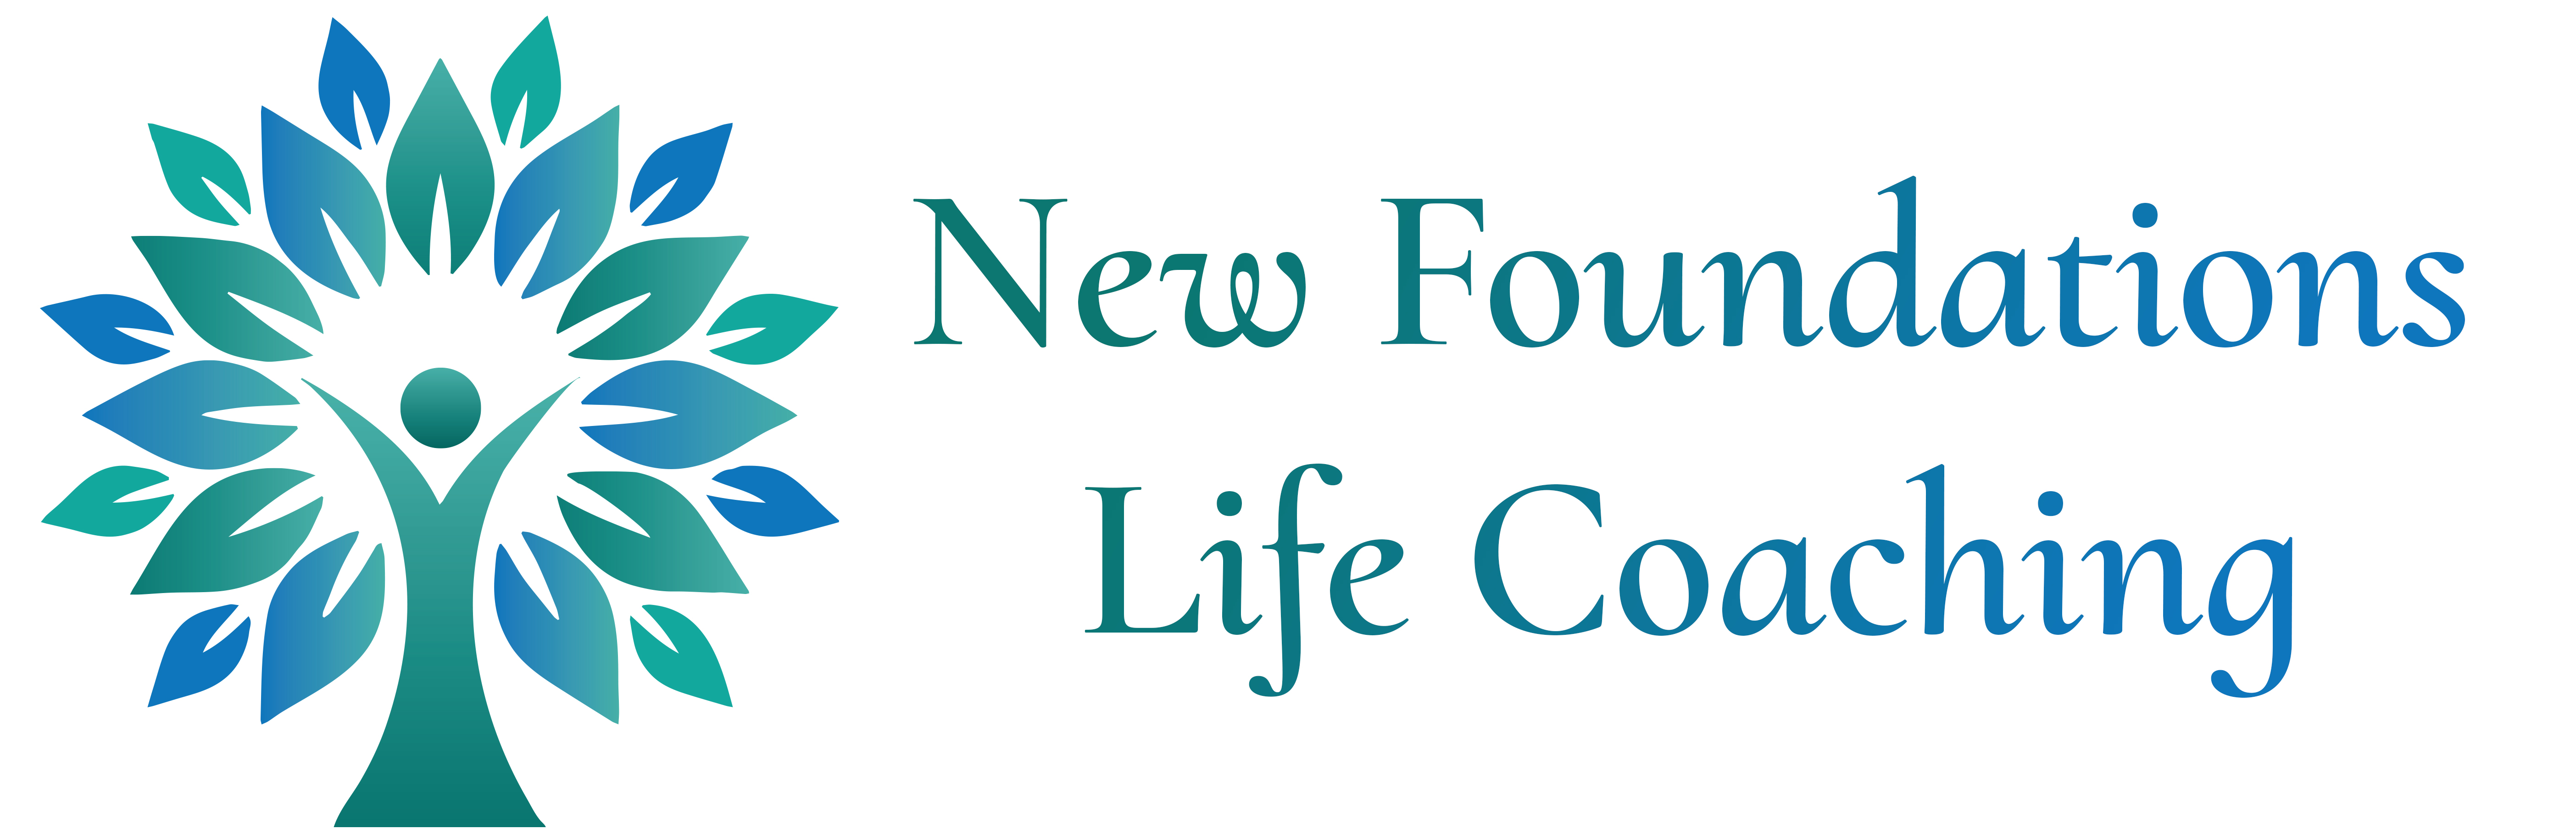 New Foundations Life Coaching